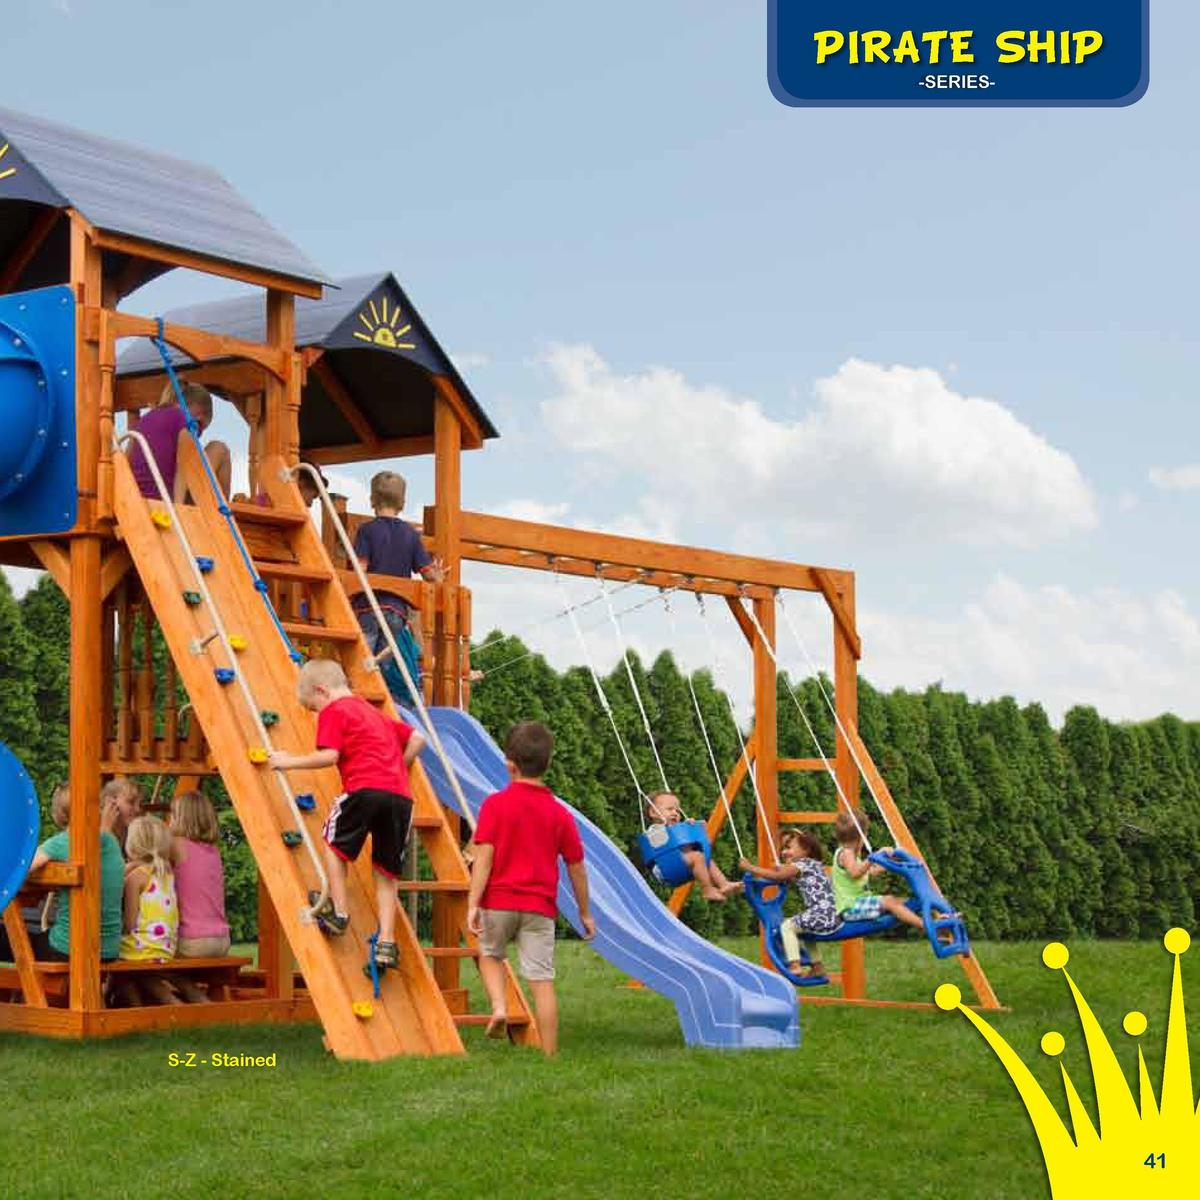 Play Deck Roofing Choices  The Captain   s Castle  PIRATE SHIP -SERIES-  Fabric  Plastic  Clap Board  Border Needed   96  ...